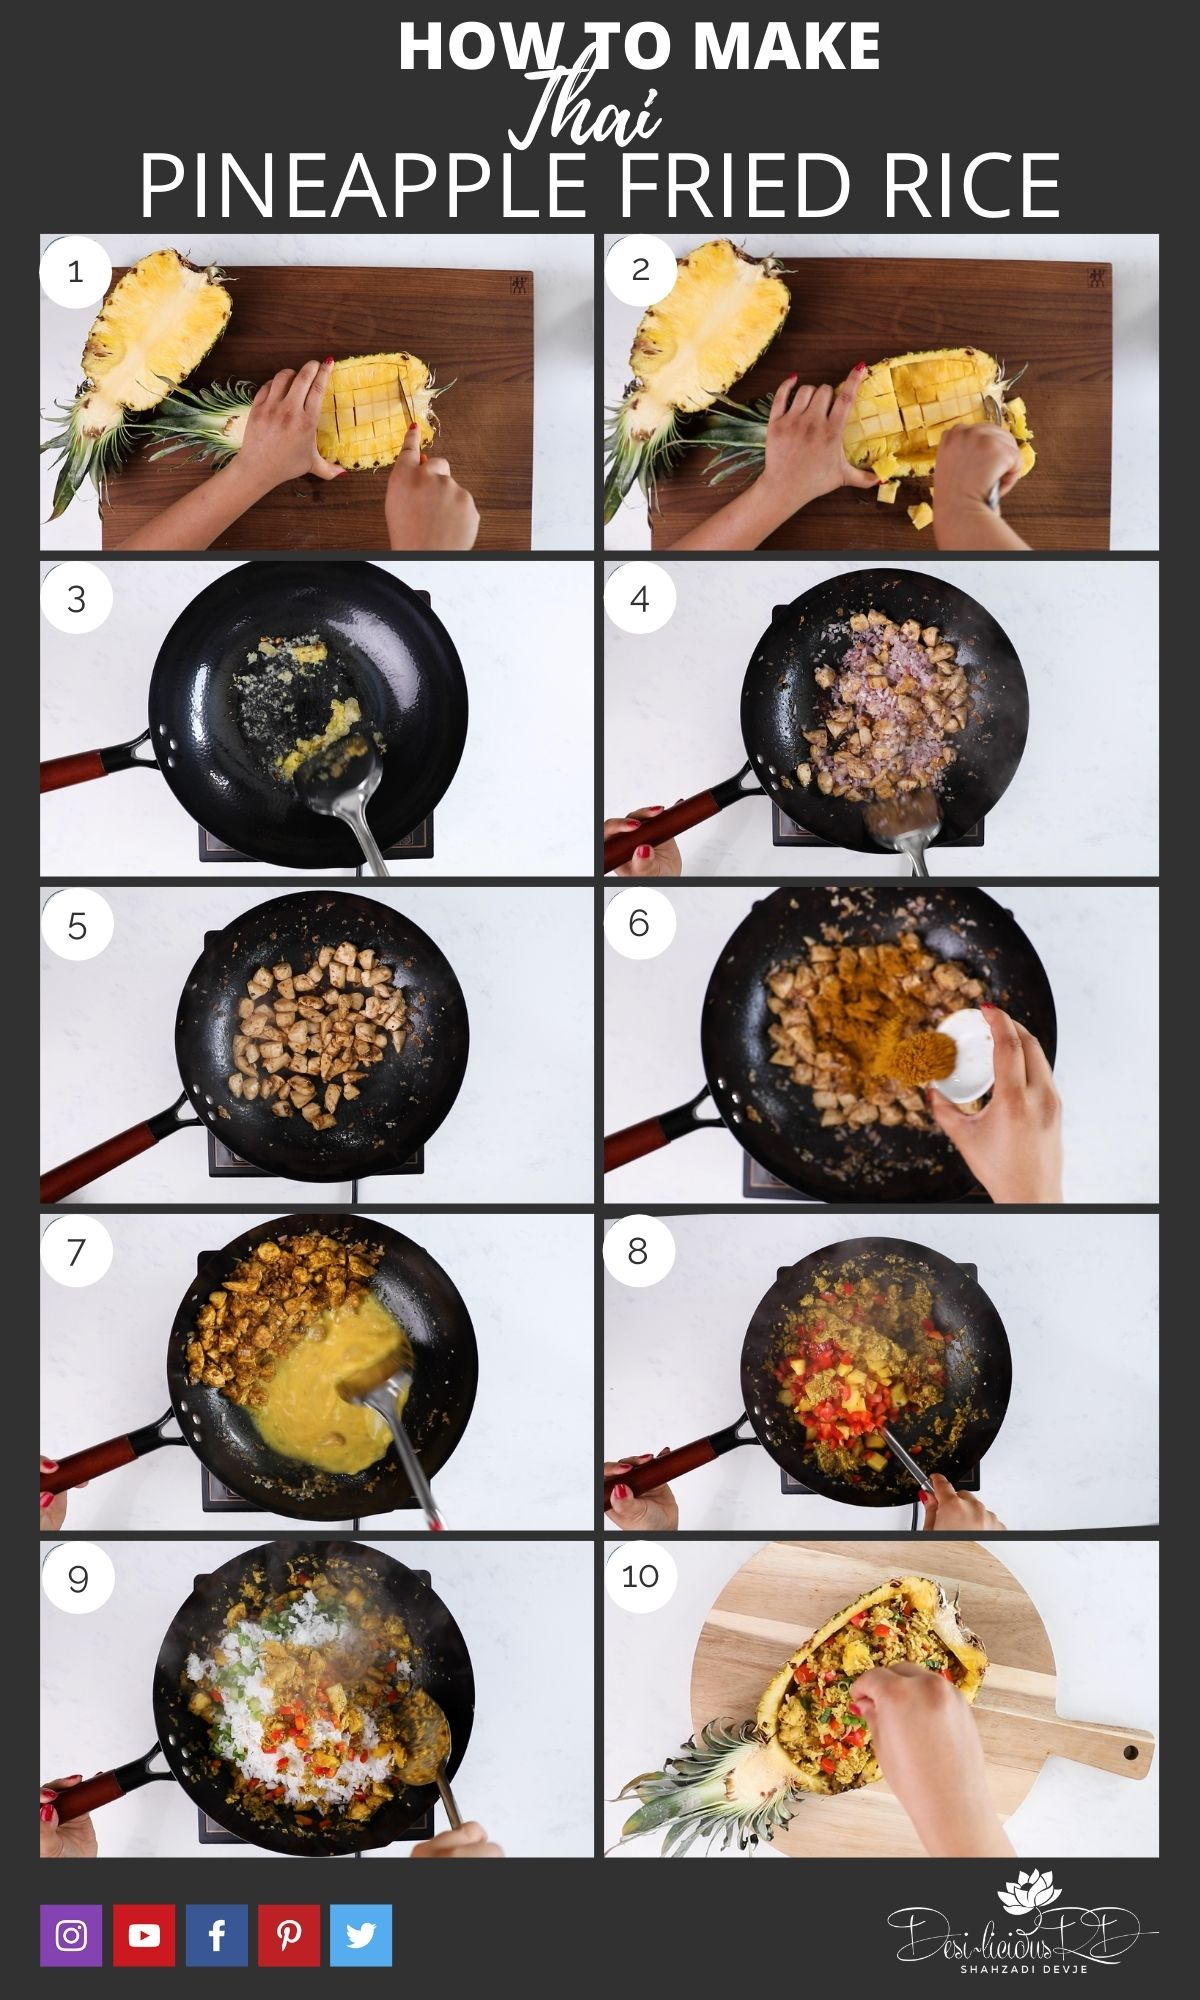 step by step preparation images of how to make Thai pineapple fried rice in a wok